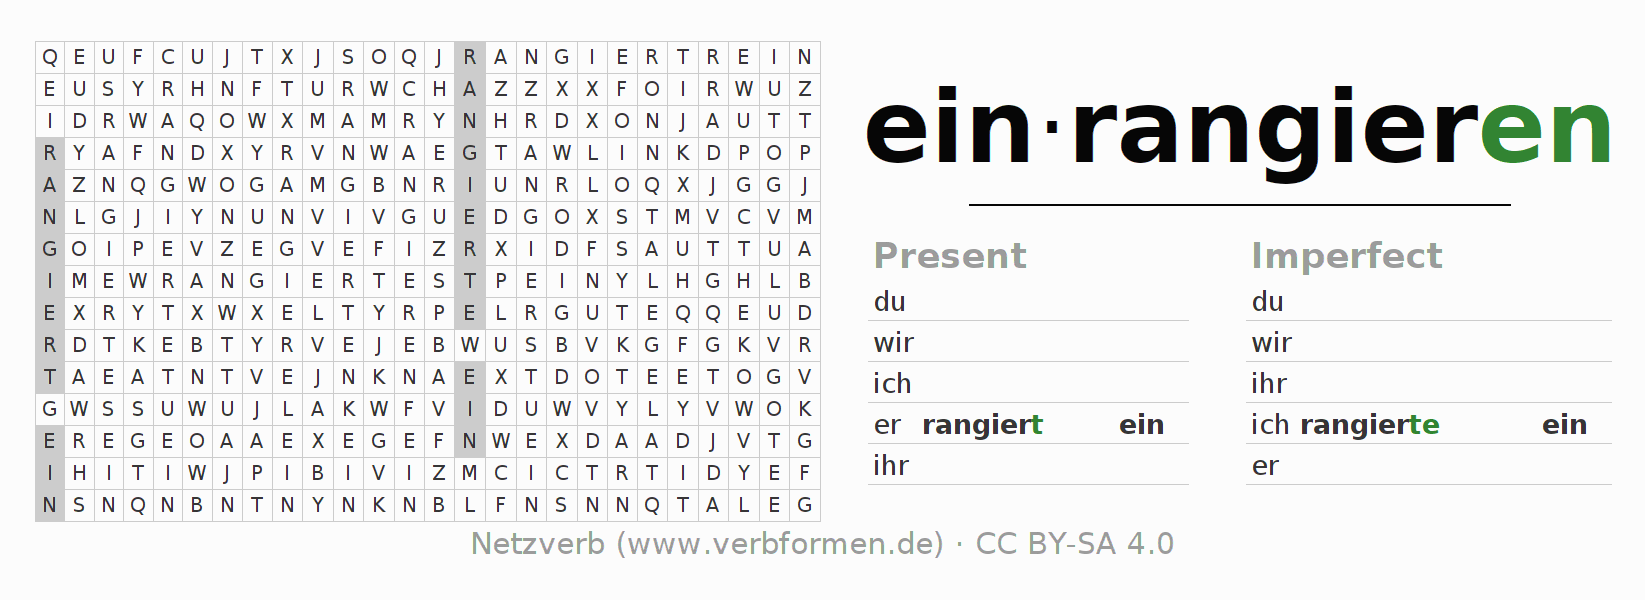 Word search puzzle for the conjugation of the verb einrangieren